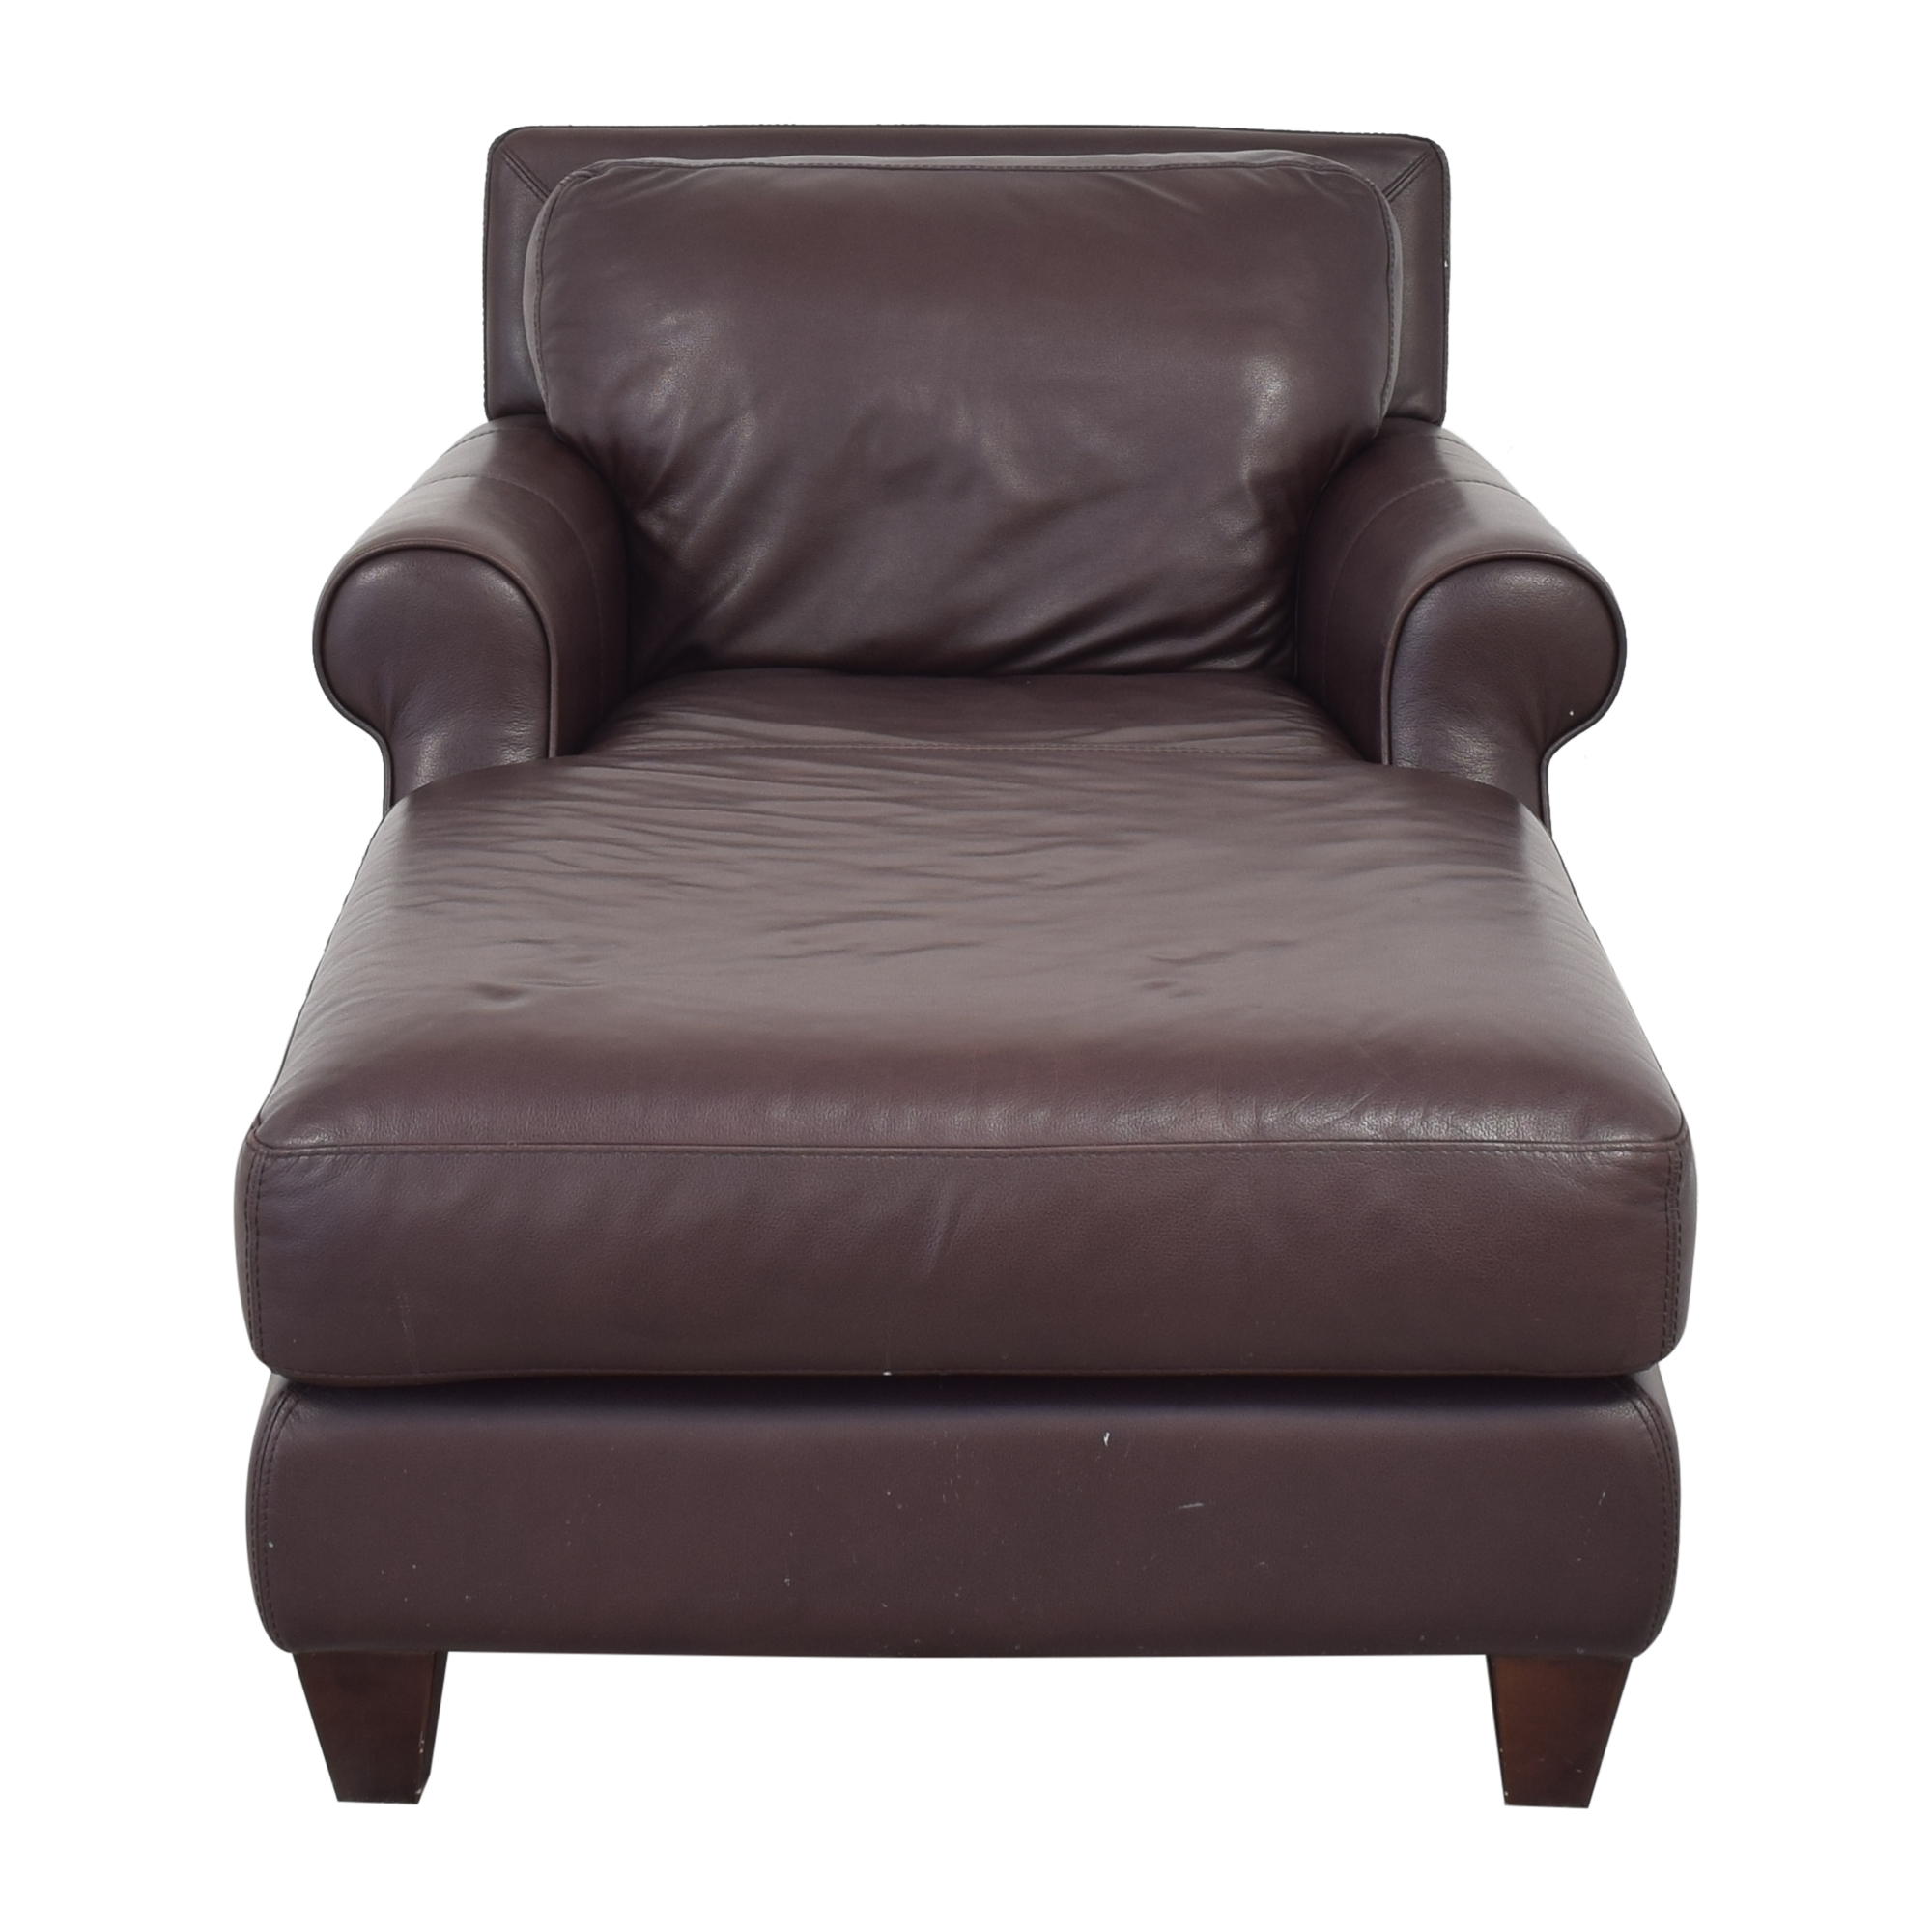 shop Chateau d'Ax Roll Arm Chaise Chair Chateau d'Ax Chaises